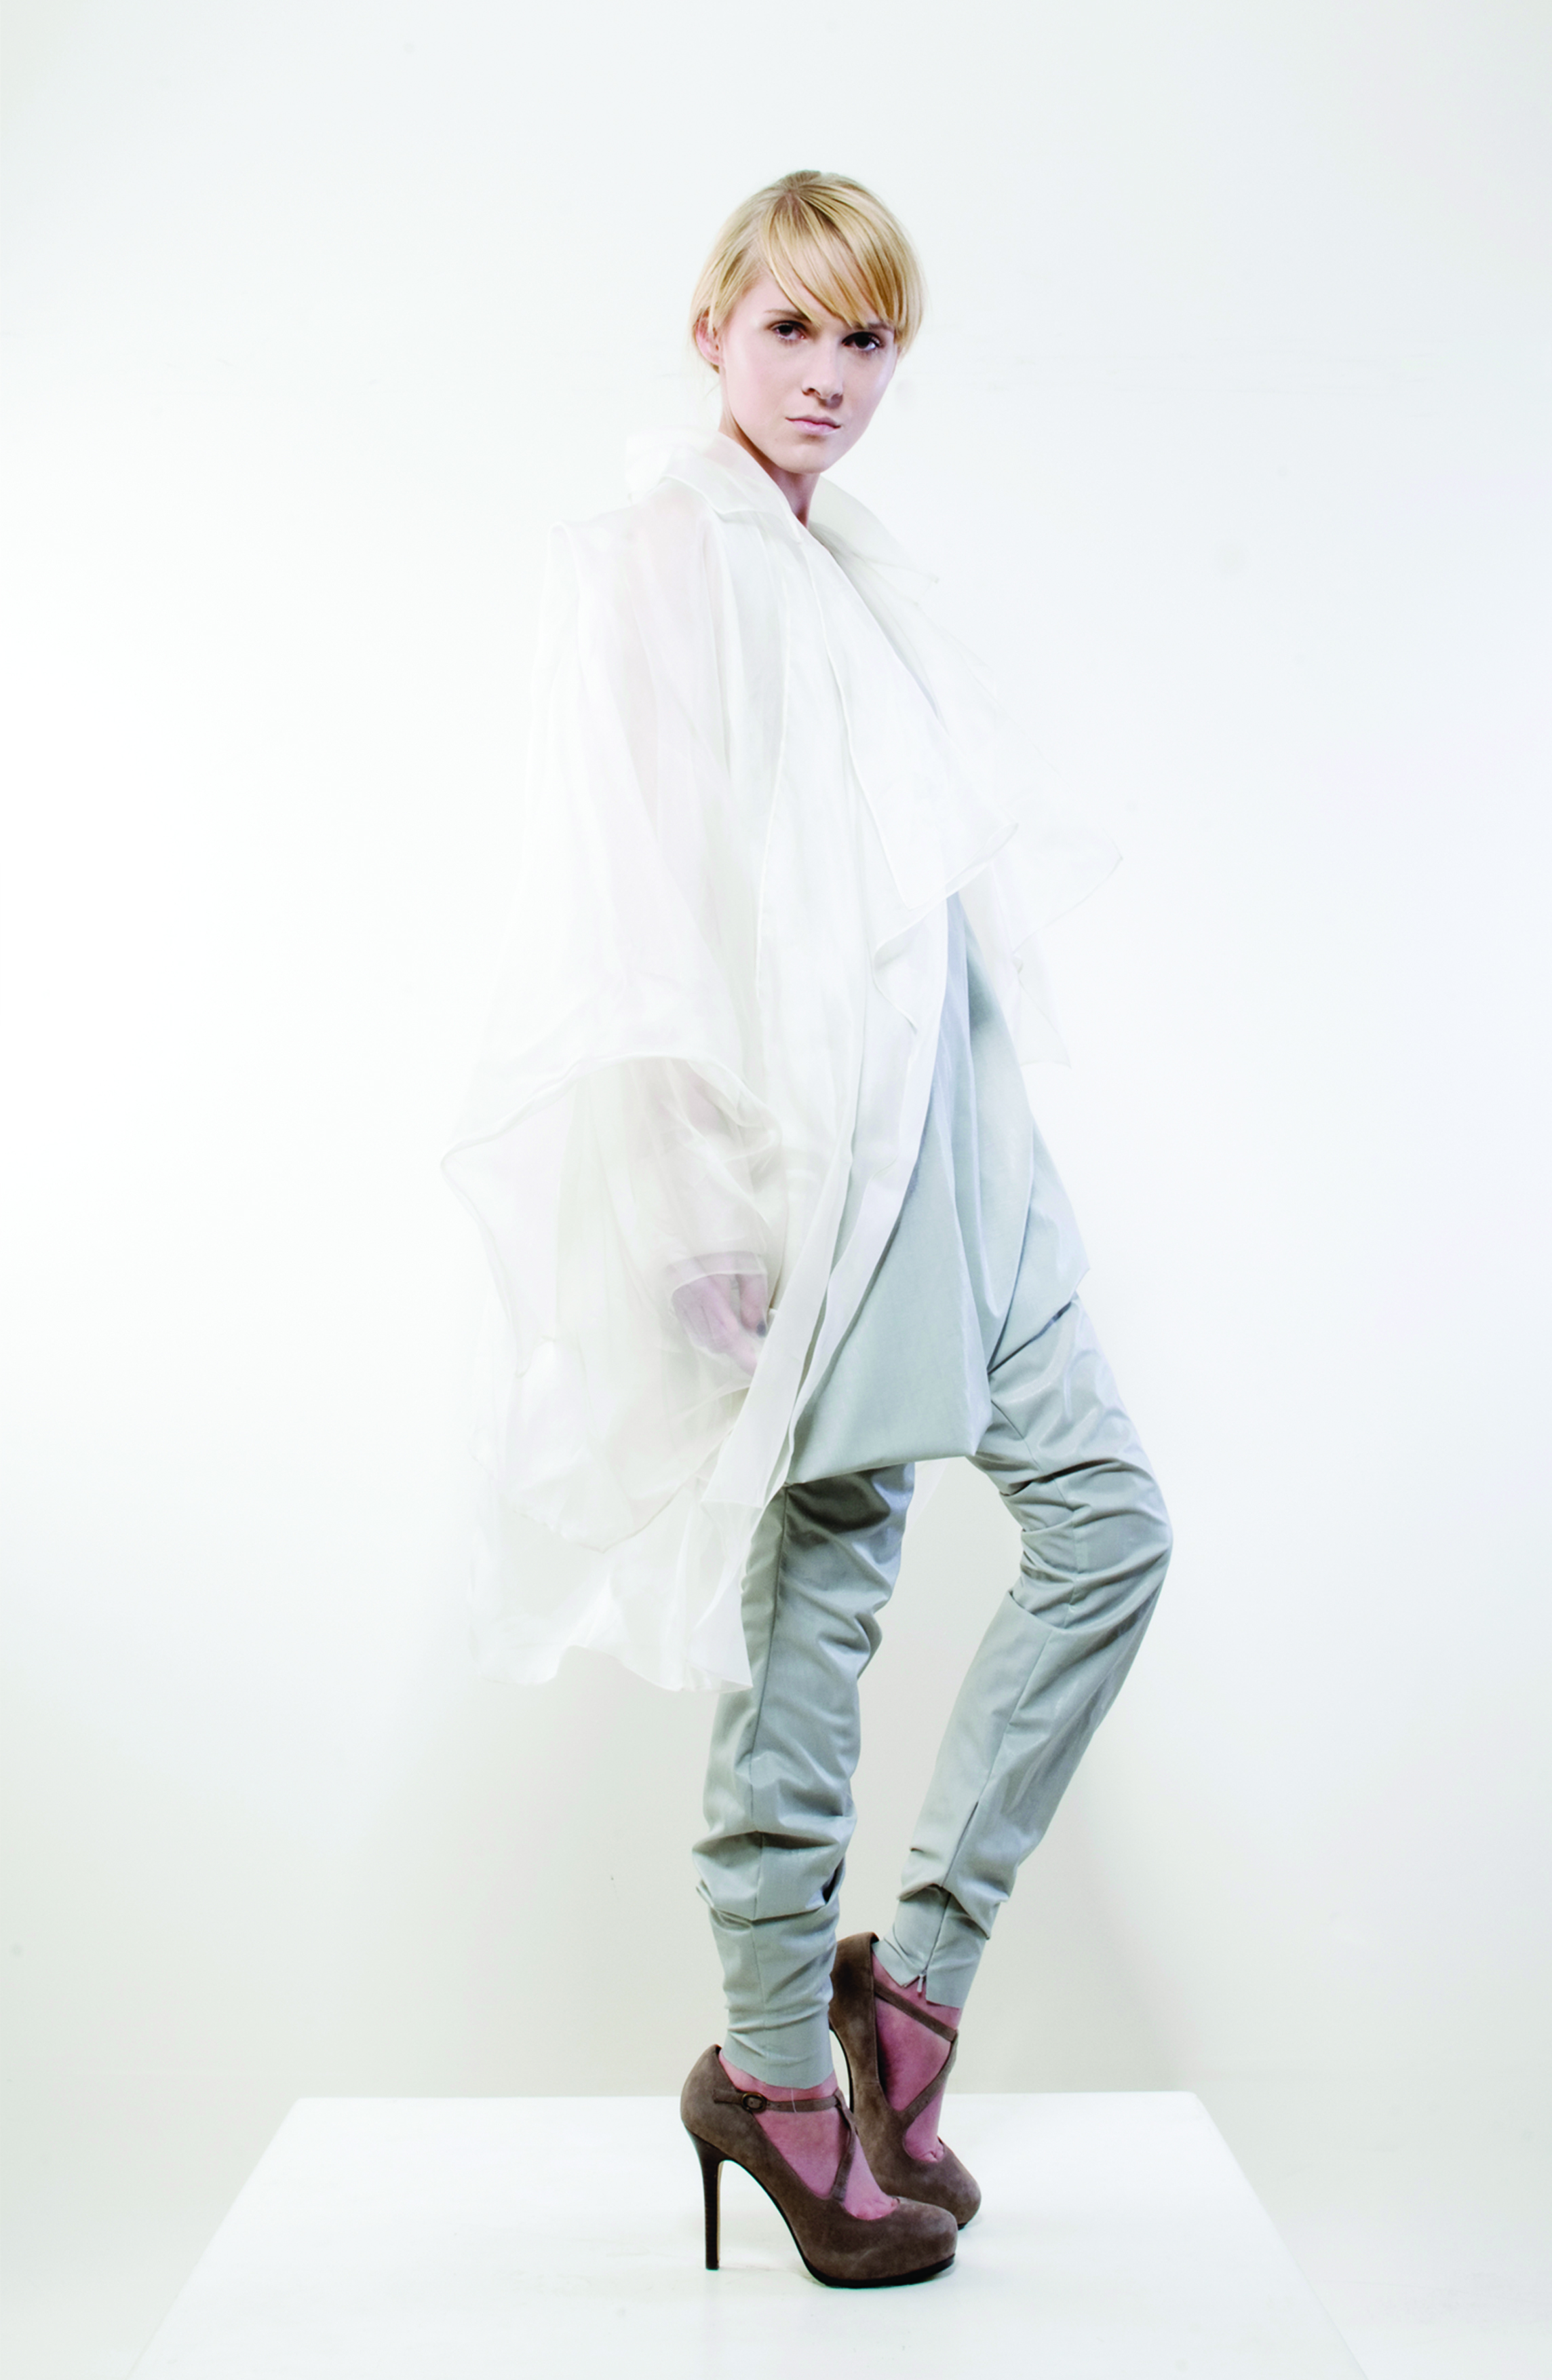 outfit-4-Gravity-and-Levitation-Spring-Summer-Collection-Isabel-Wong-White-silk-organza-Sheer-Jacket-Rubber-Jumpsuit.jpg